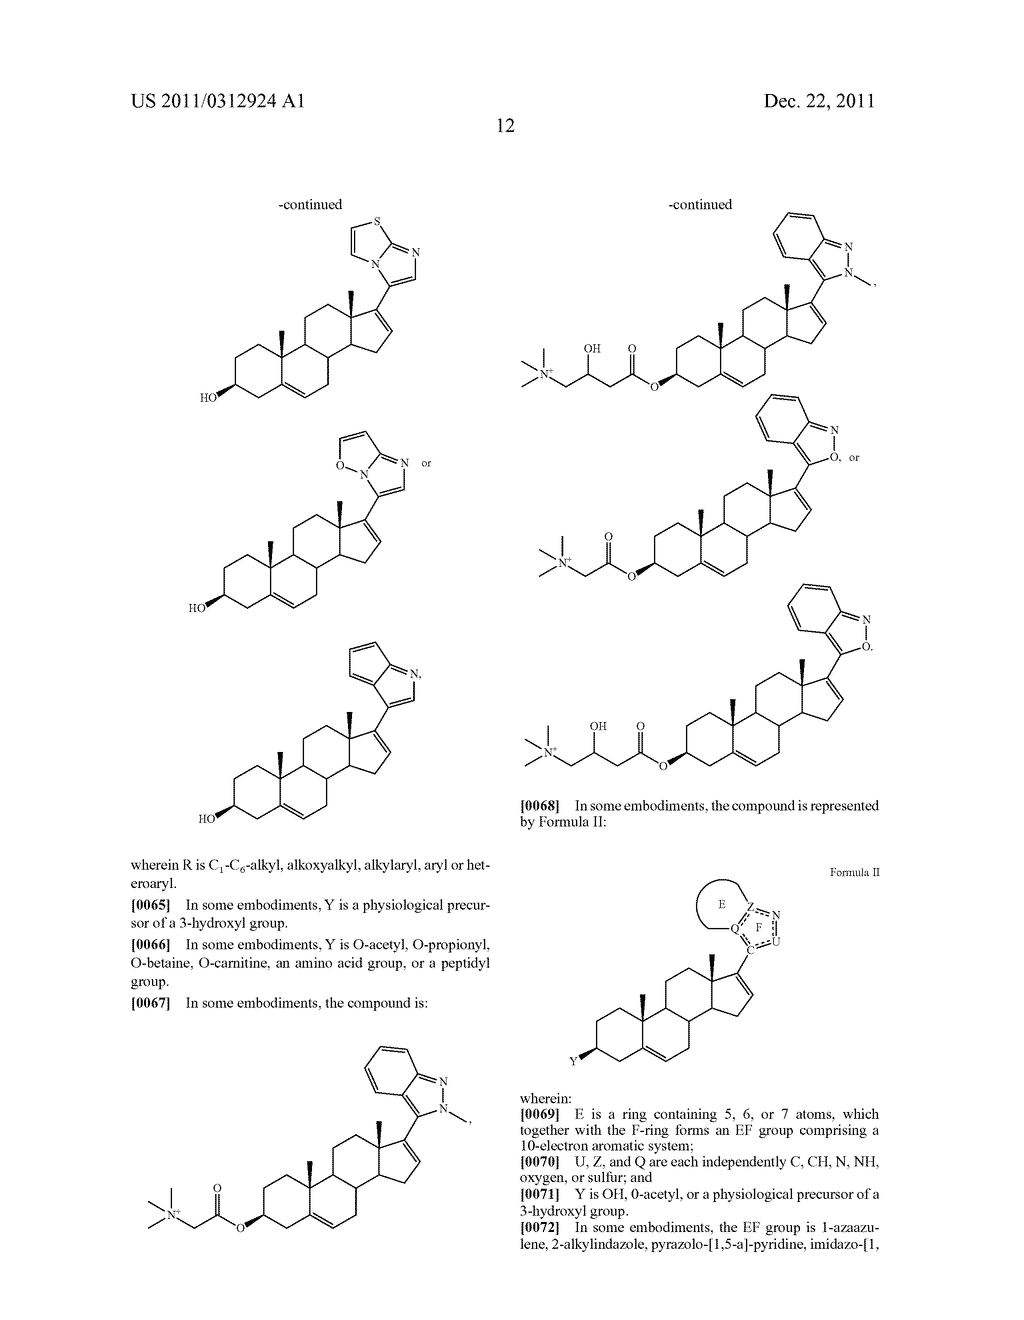 NOVEL STEROIDAL CYP17 INHIBITORS/ANTIANDROGENS - diagram, schematic, and image 13